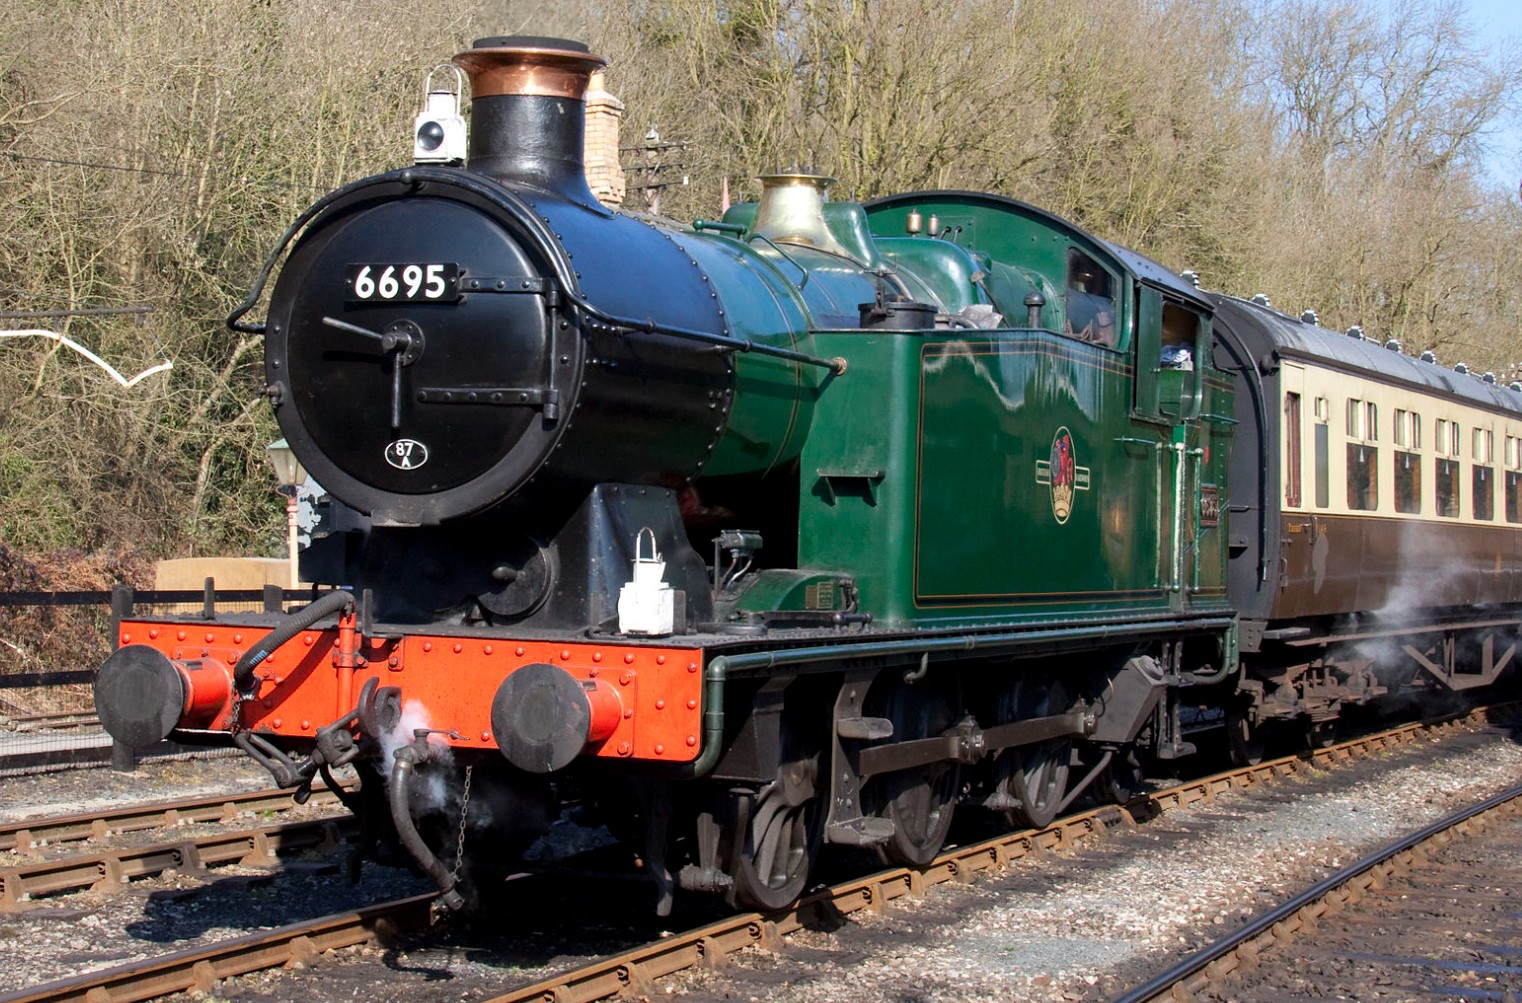 6695 at the Severn Valley Railway in March 2010.  ©Tony Hisgett